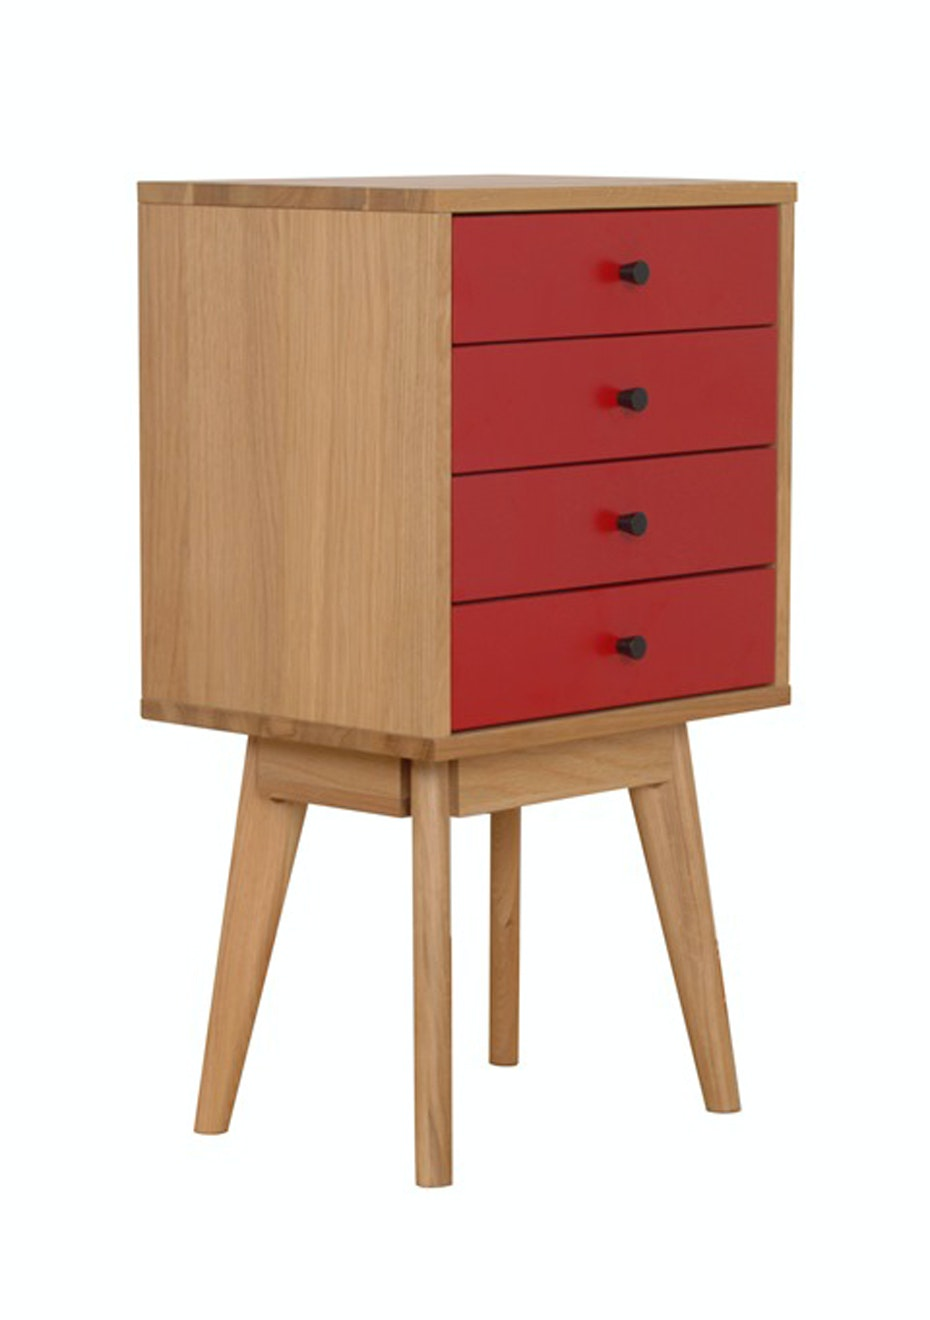 Furniture By Design - Radius 4 Tower- Red and Oak